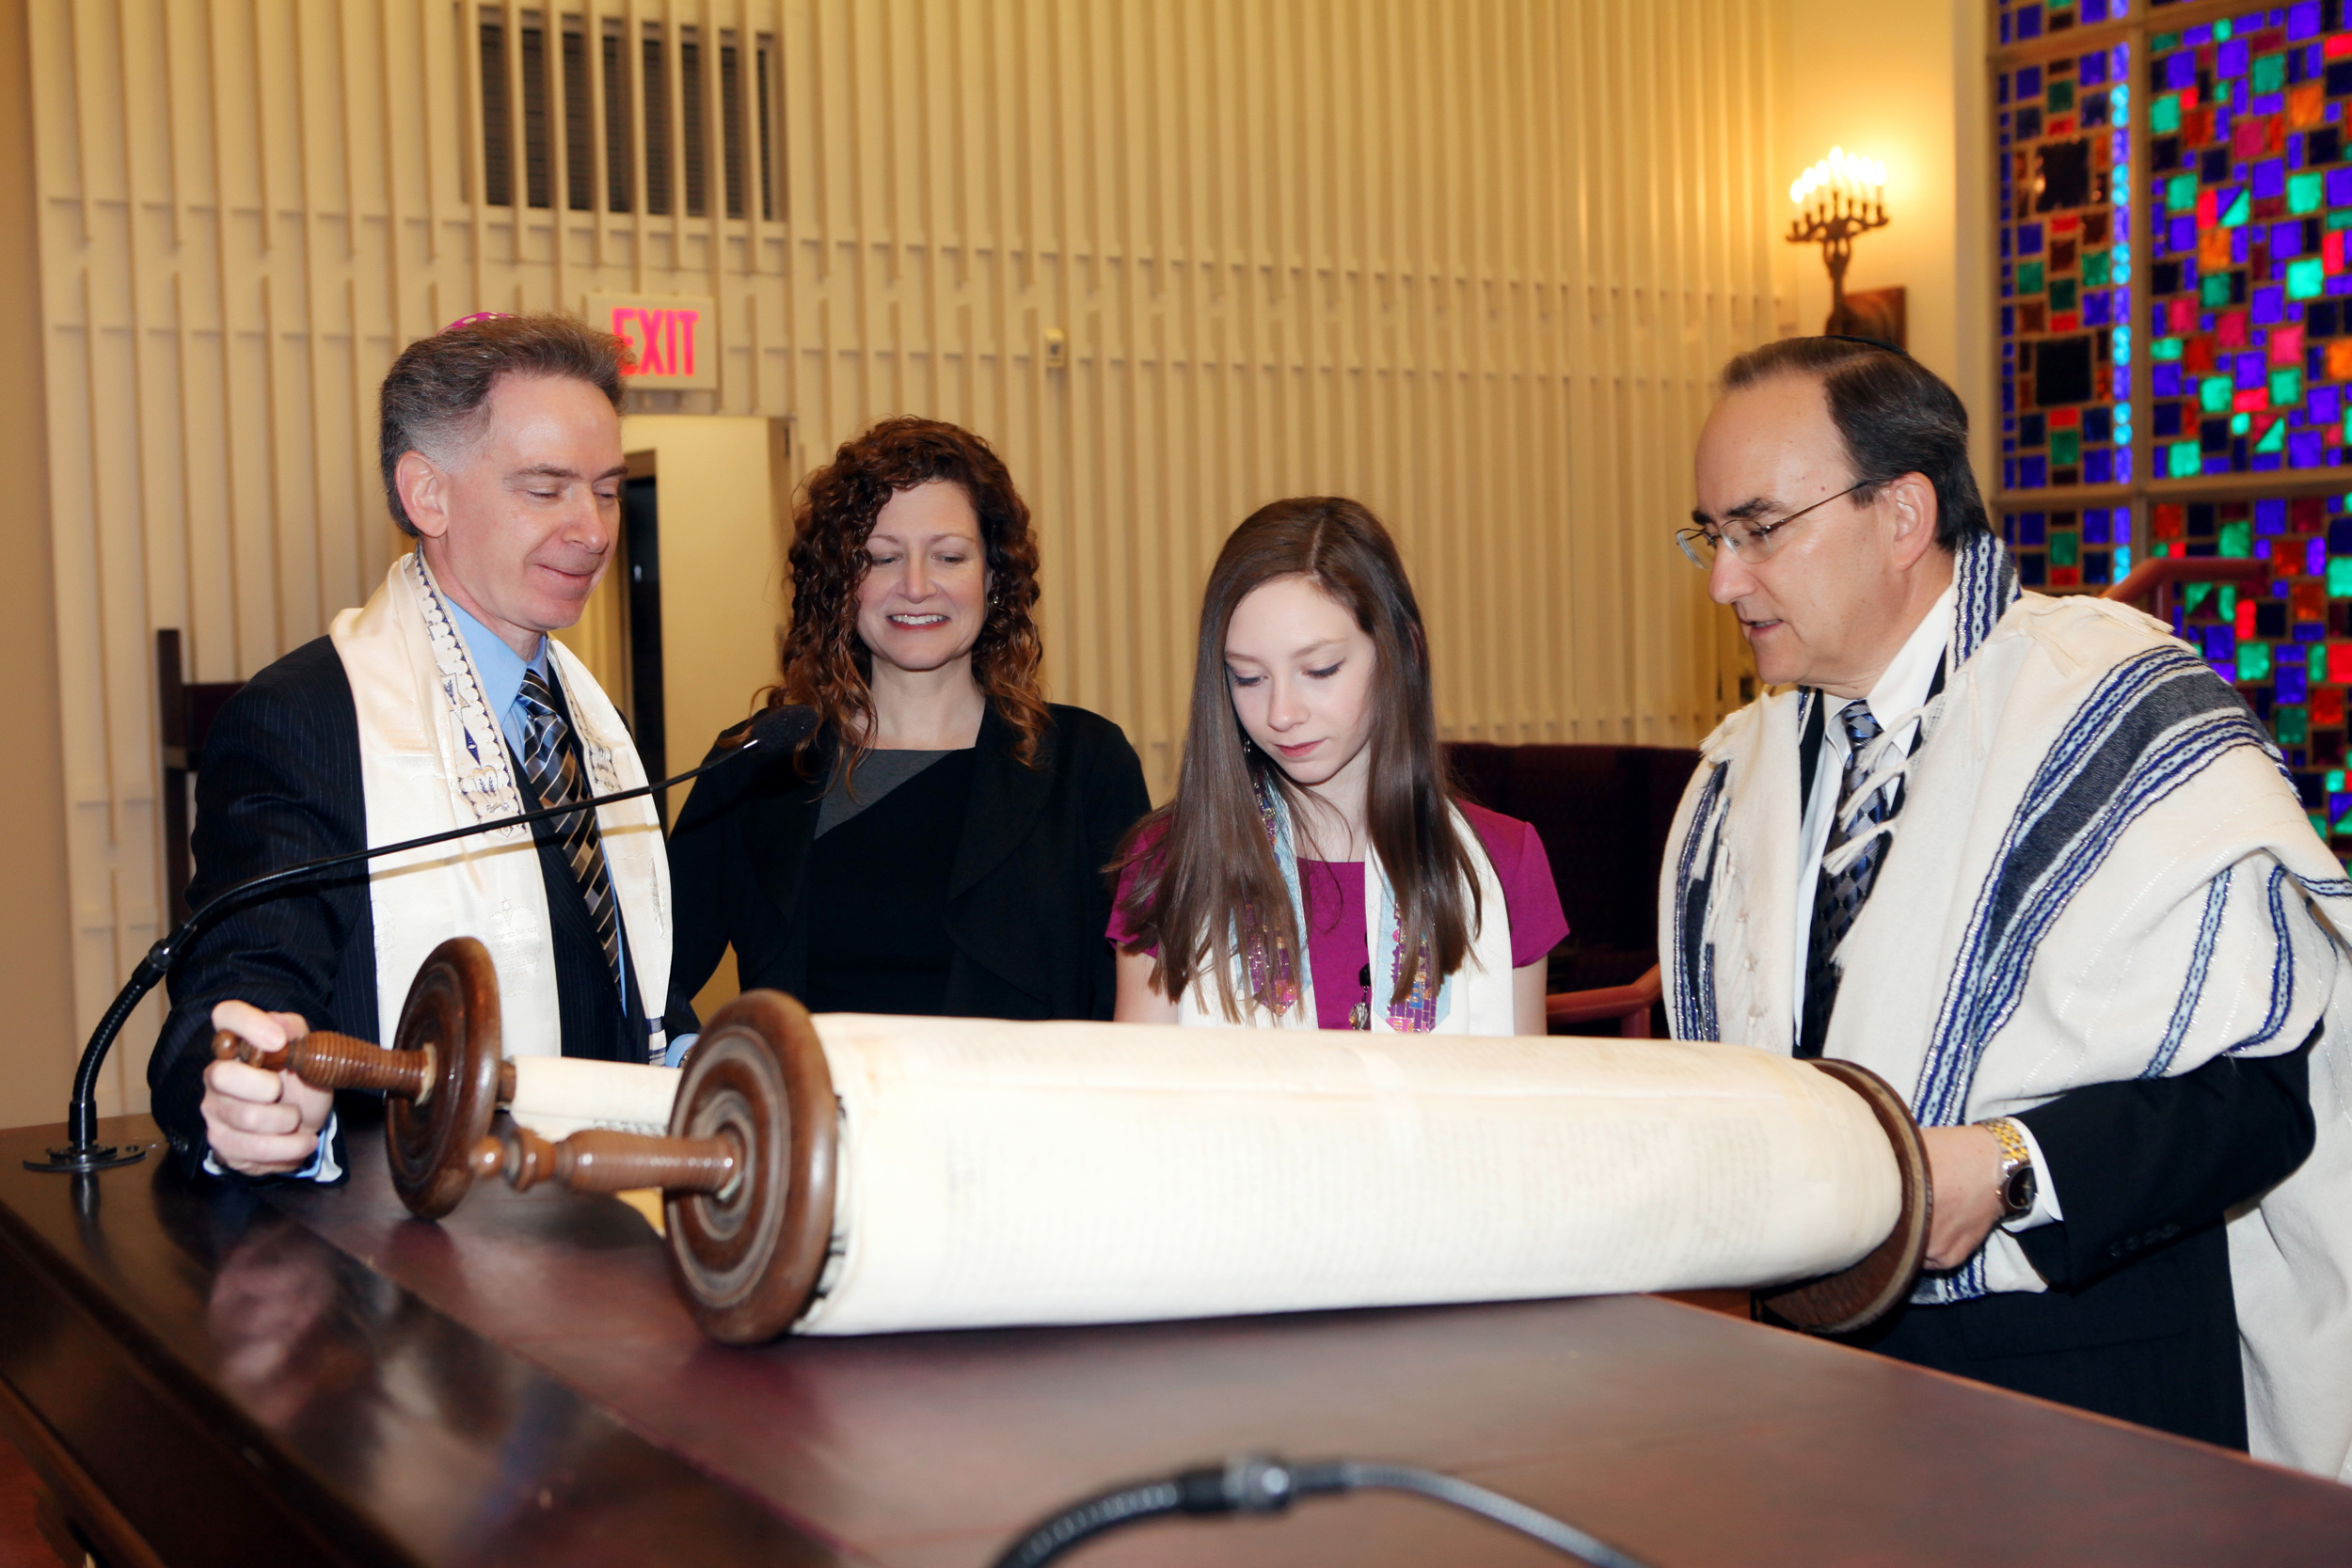 The Altdorf Torah in 2013, as Erika's cousin, Sophia R., the youngest great-grandchild of Erika's great-aunt Bella, became a Bat Mitzvah in Columbus, Ohio.